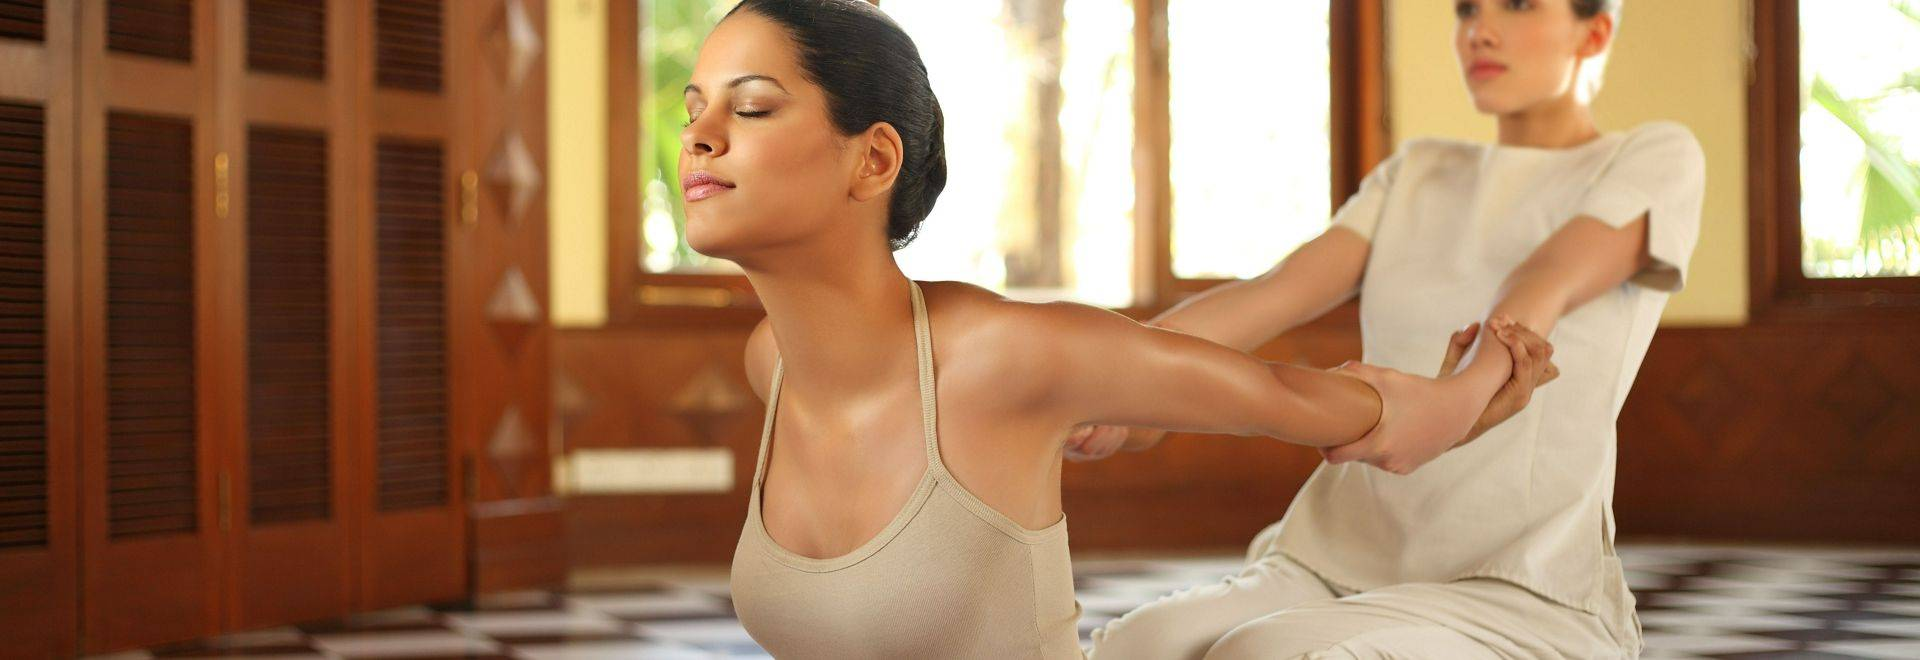 Ananda-back-stretching.jpg